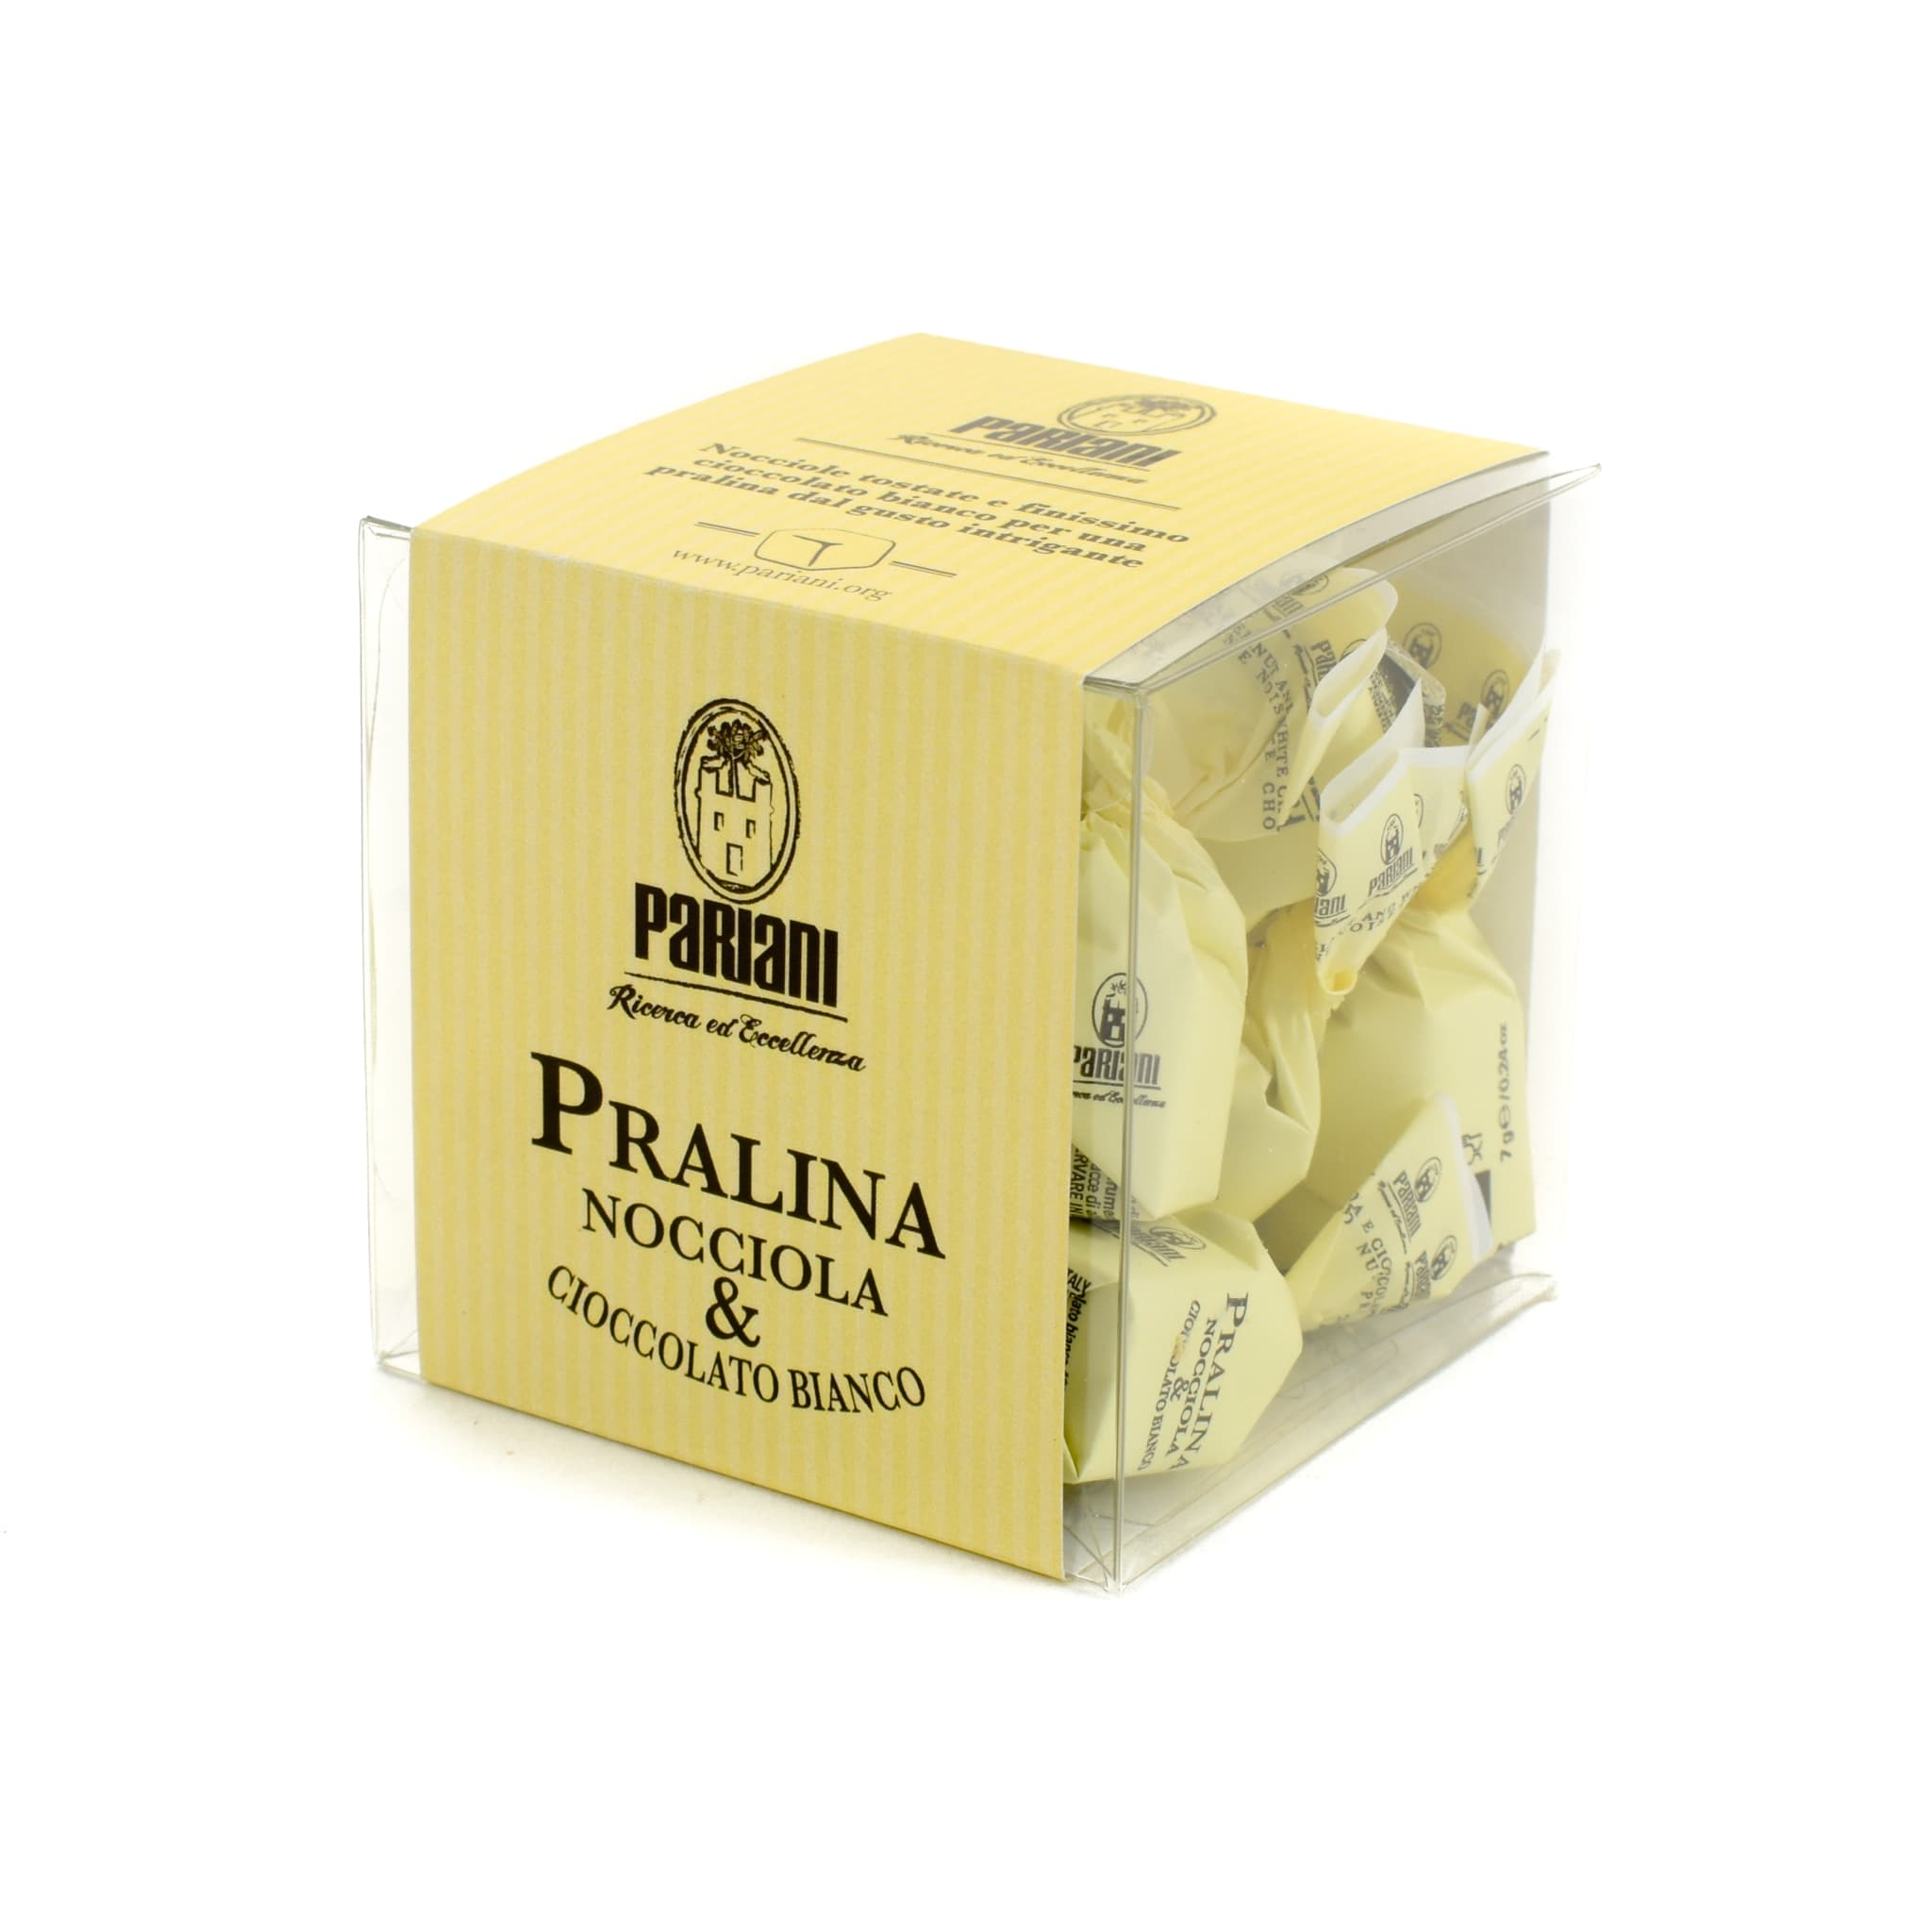 Pariani Hazelnut and White Chocolate Pralines